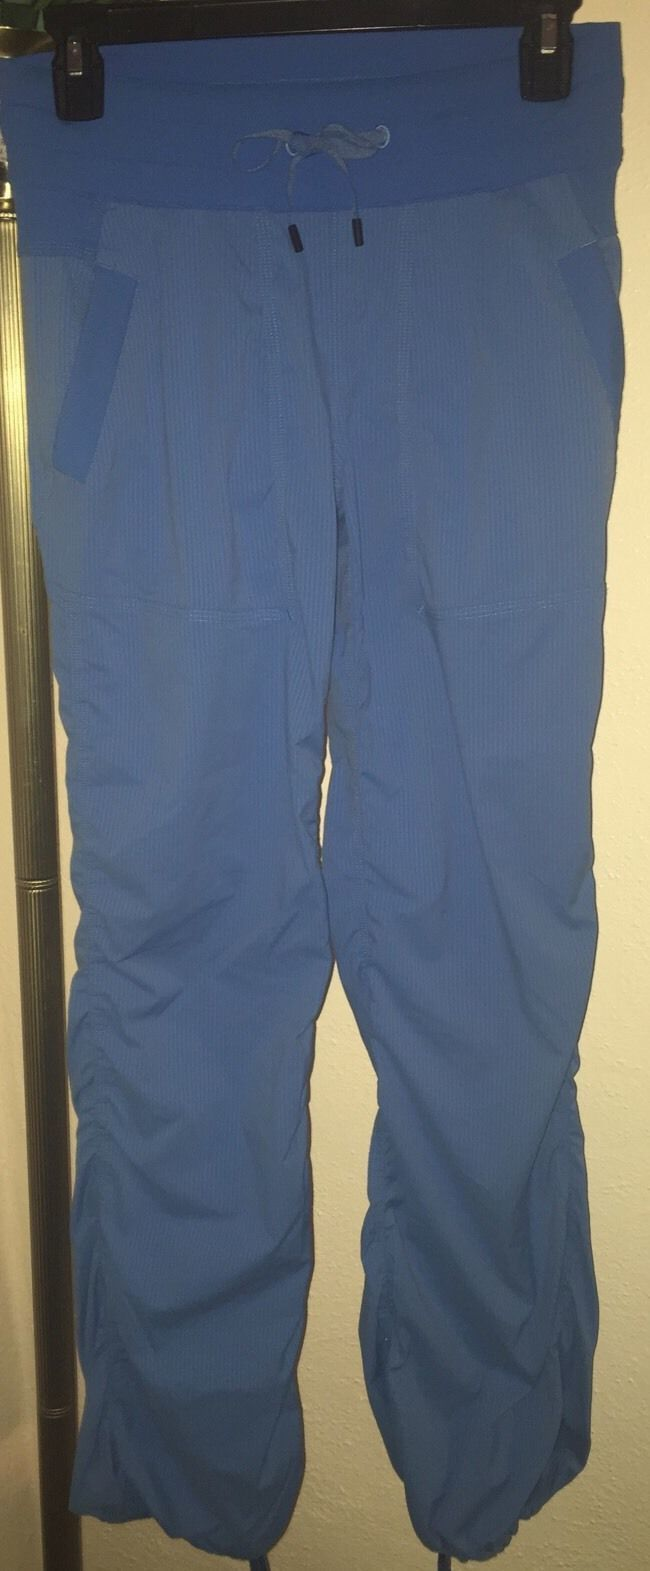 37dbe49f6c Lululemon Unlined Rouched Dance Studio Pants and 50 similar items. S l1600